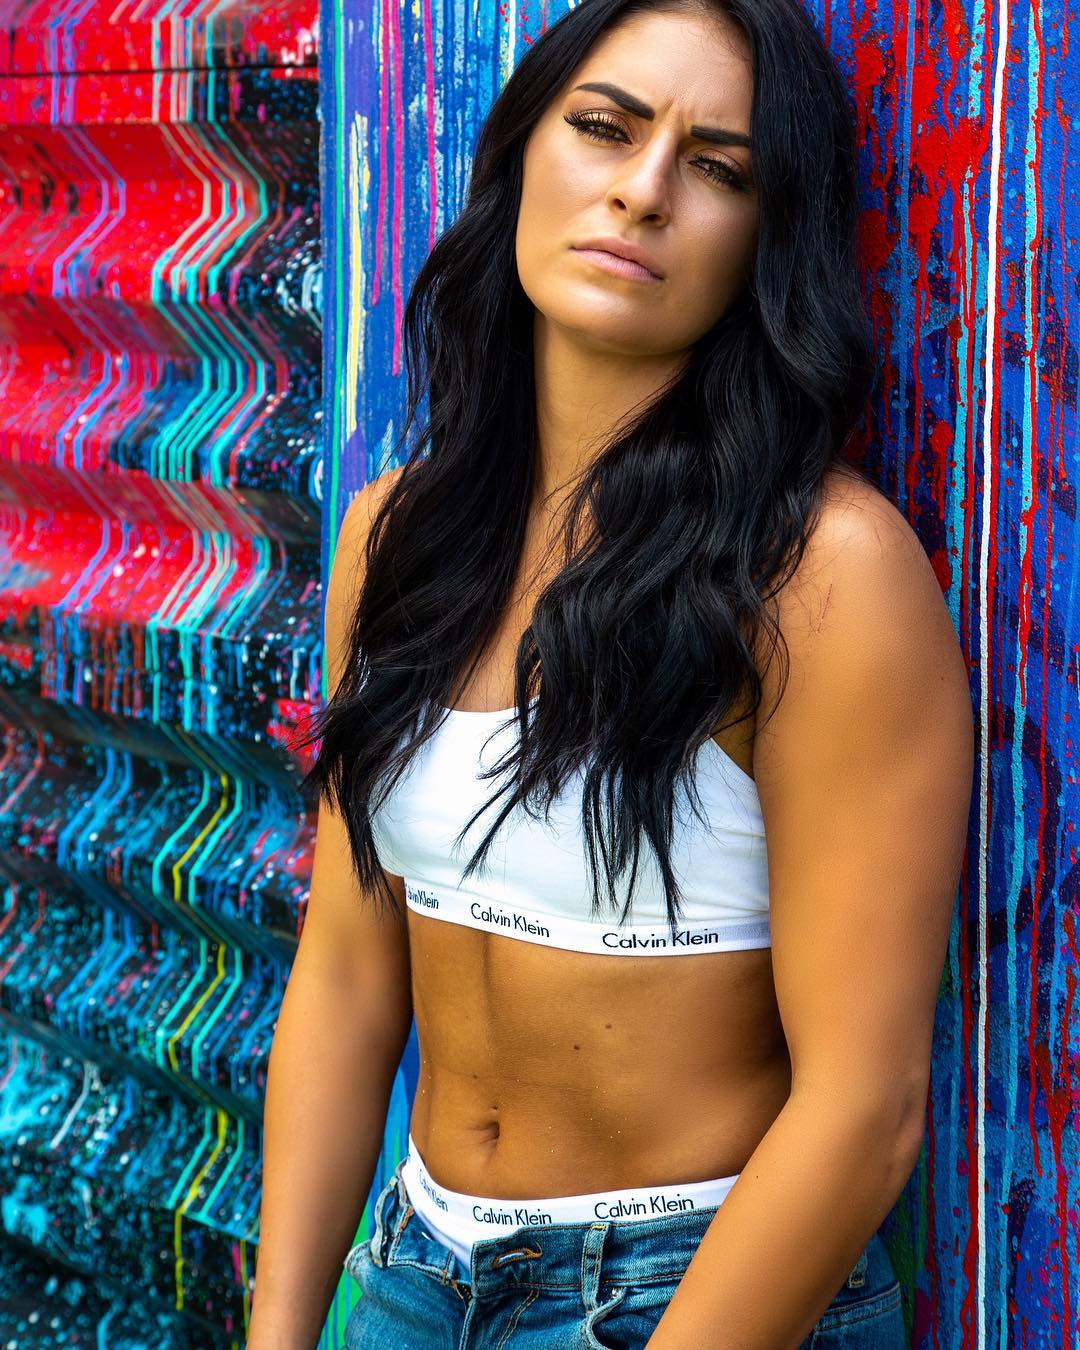 Sonya DeVille awesome pic